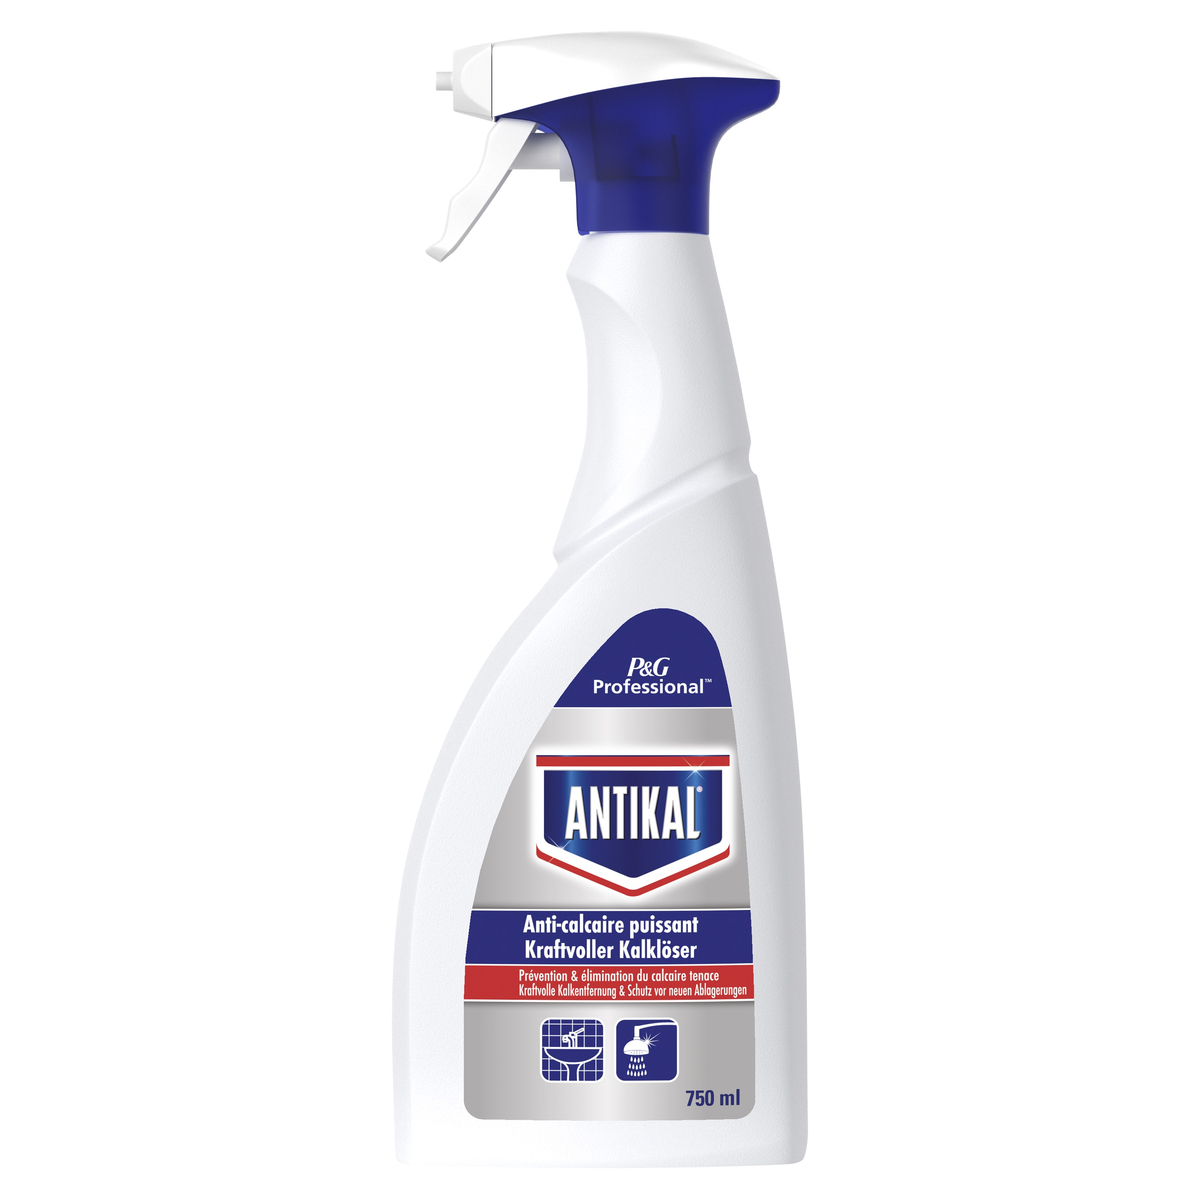 Anti-calcaire 750 ml Antikal